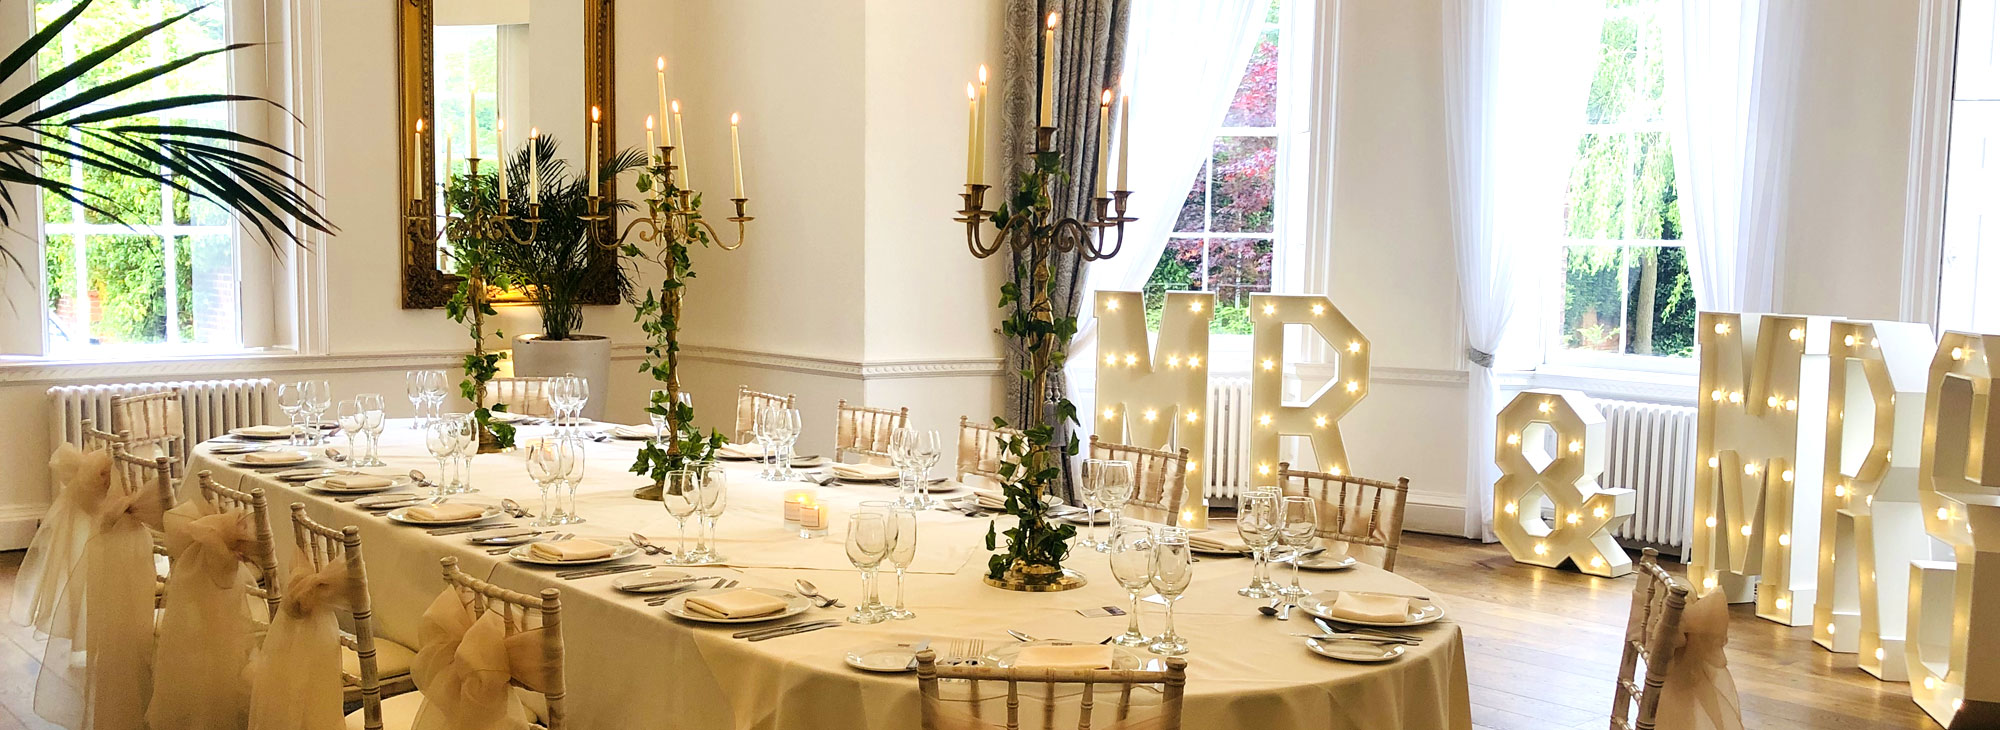 Small & Intimate Wedding Venue on the South Yorkshire and Nottinghamshire border